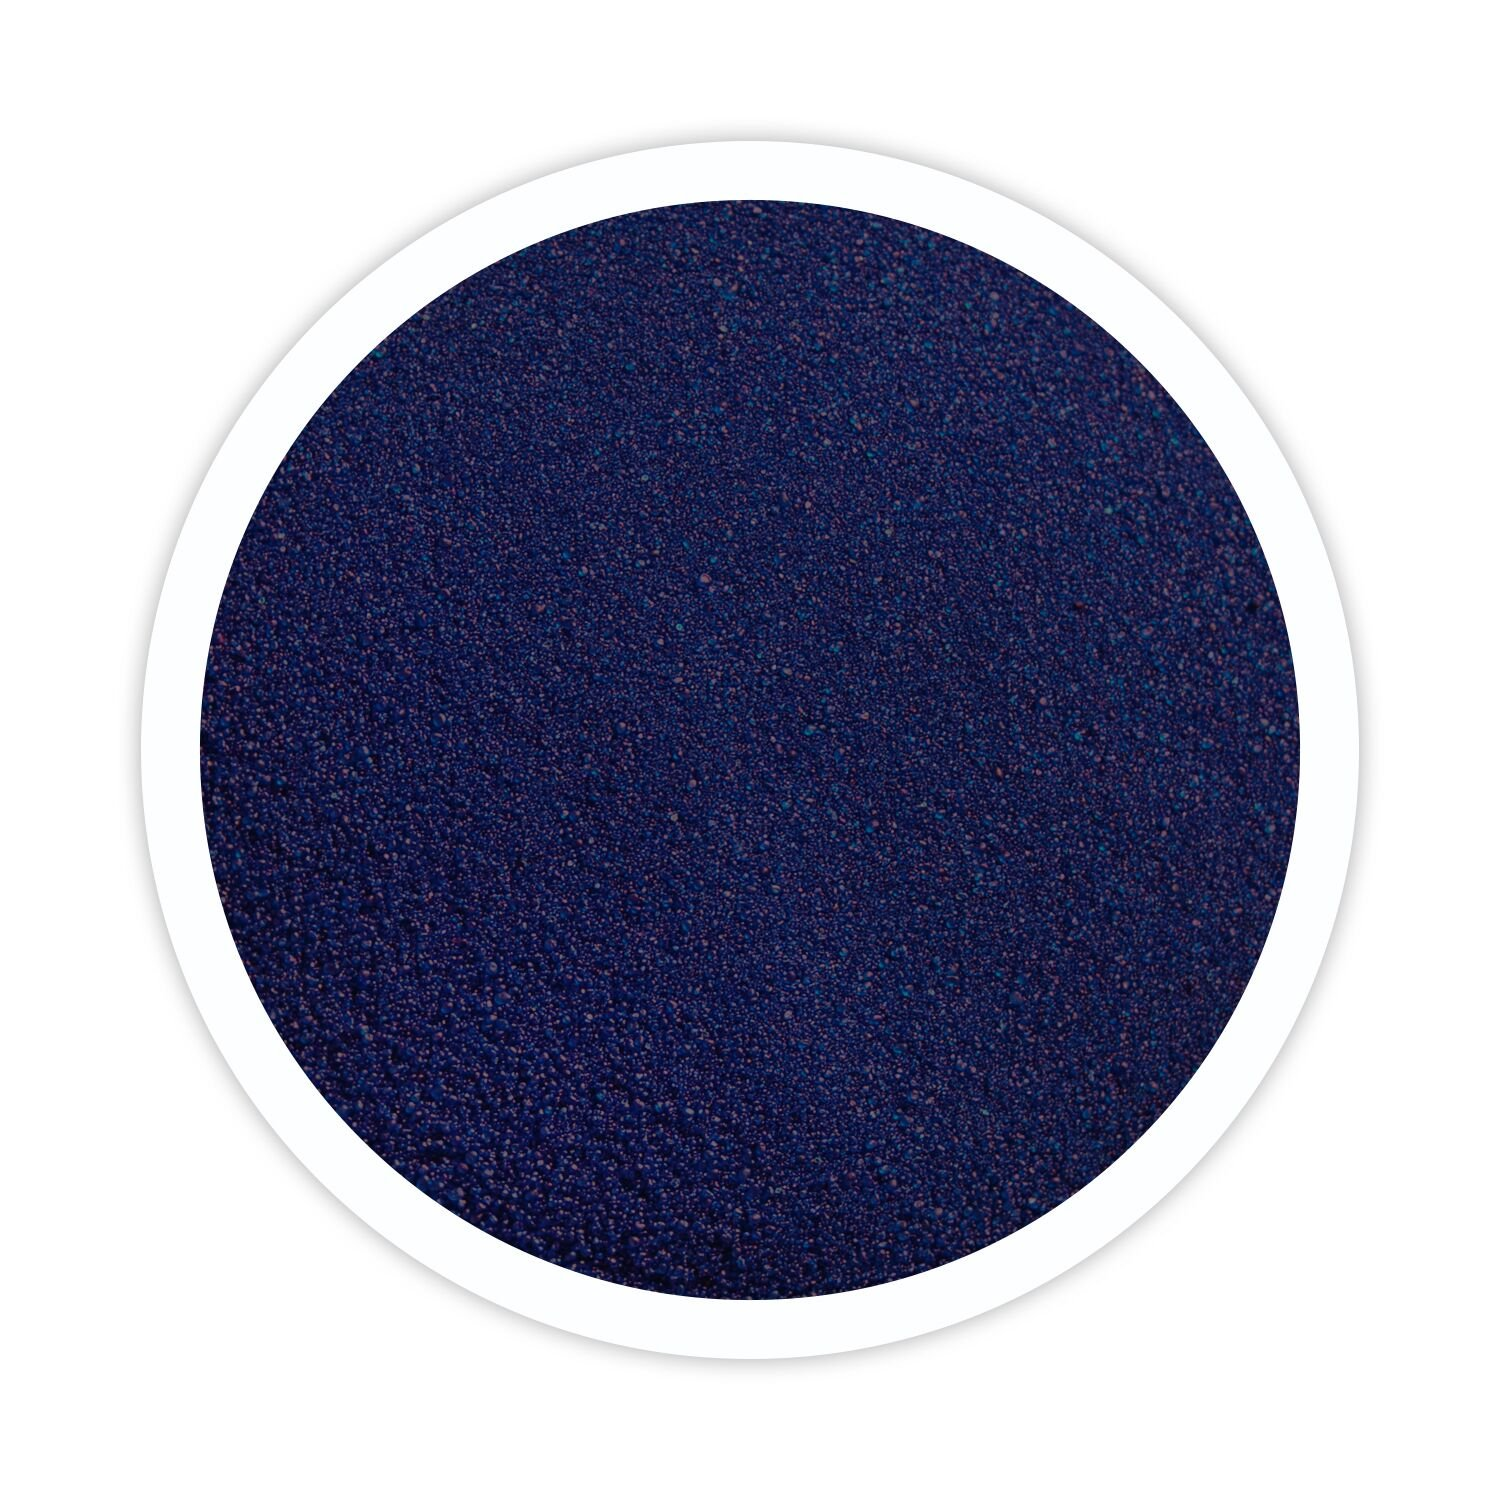 Sandsational Blue Velvet Unity Sand, 1 Pound, Colored Sand for Weddings, Vase Filler, Home Décor, Craft Sand Home Décor Sandsational Sparkle SS-BlueVelvet-1lb